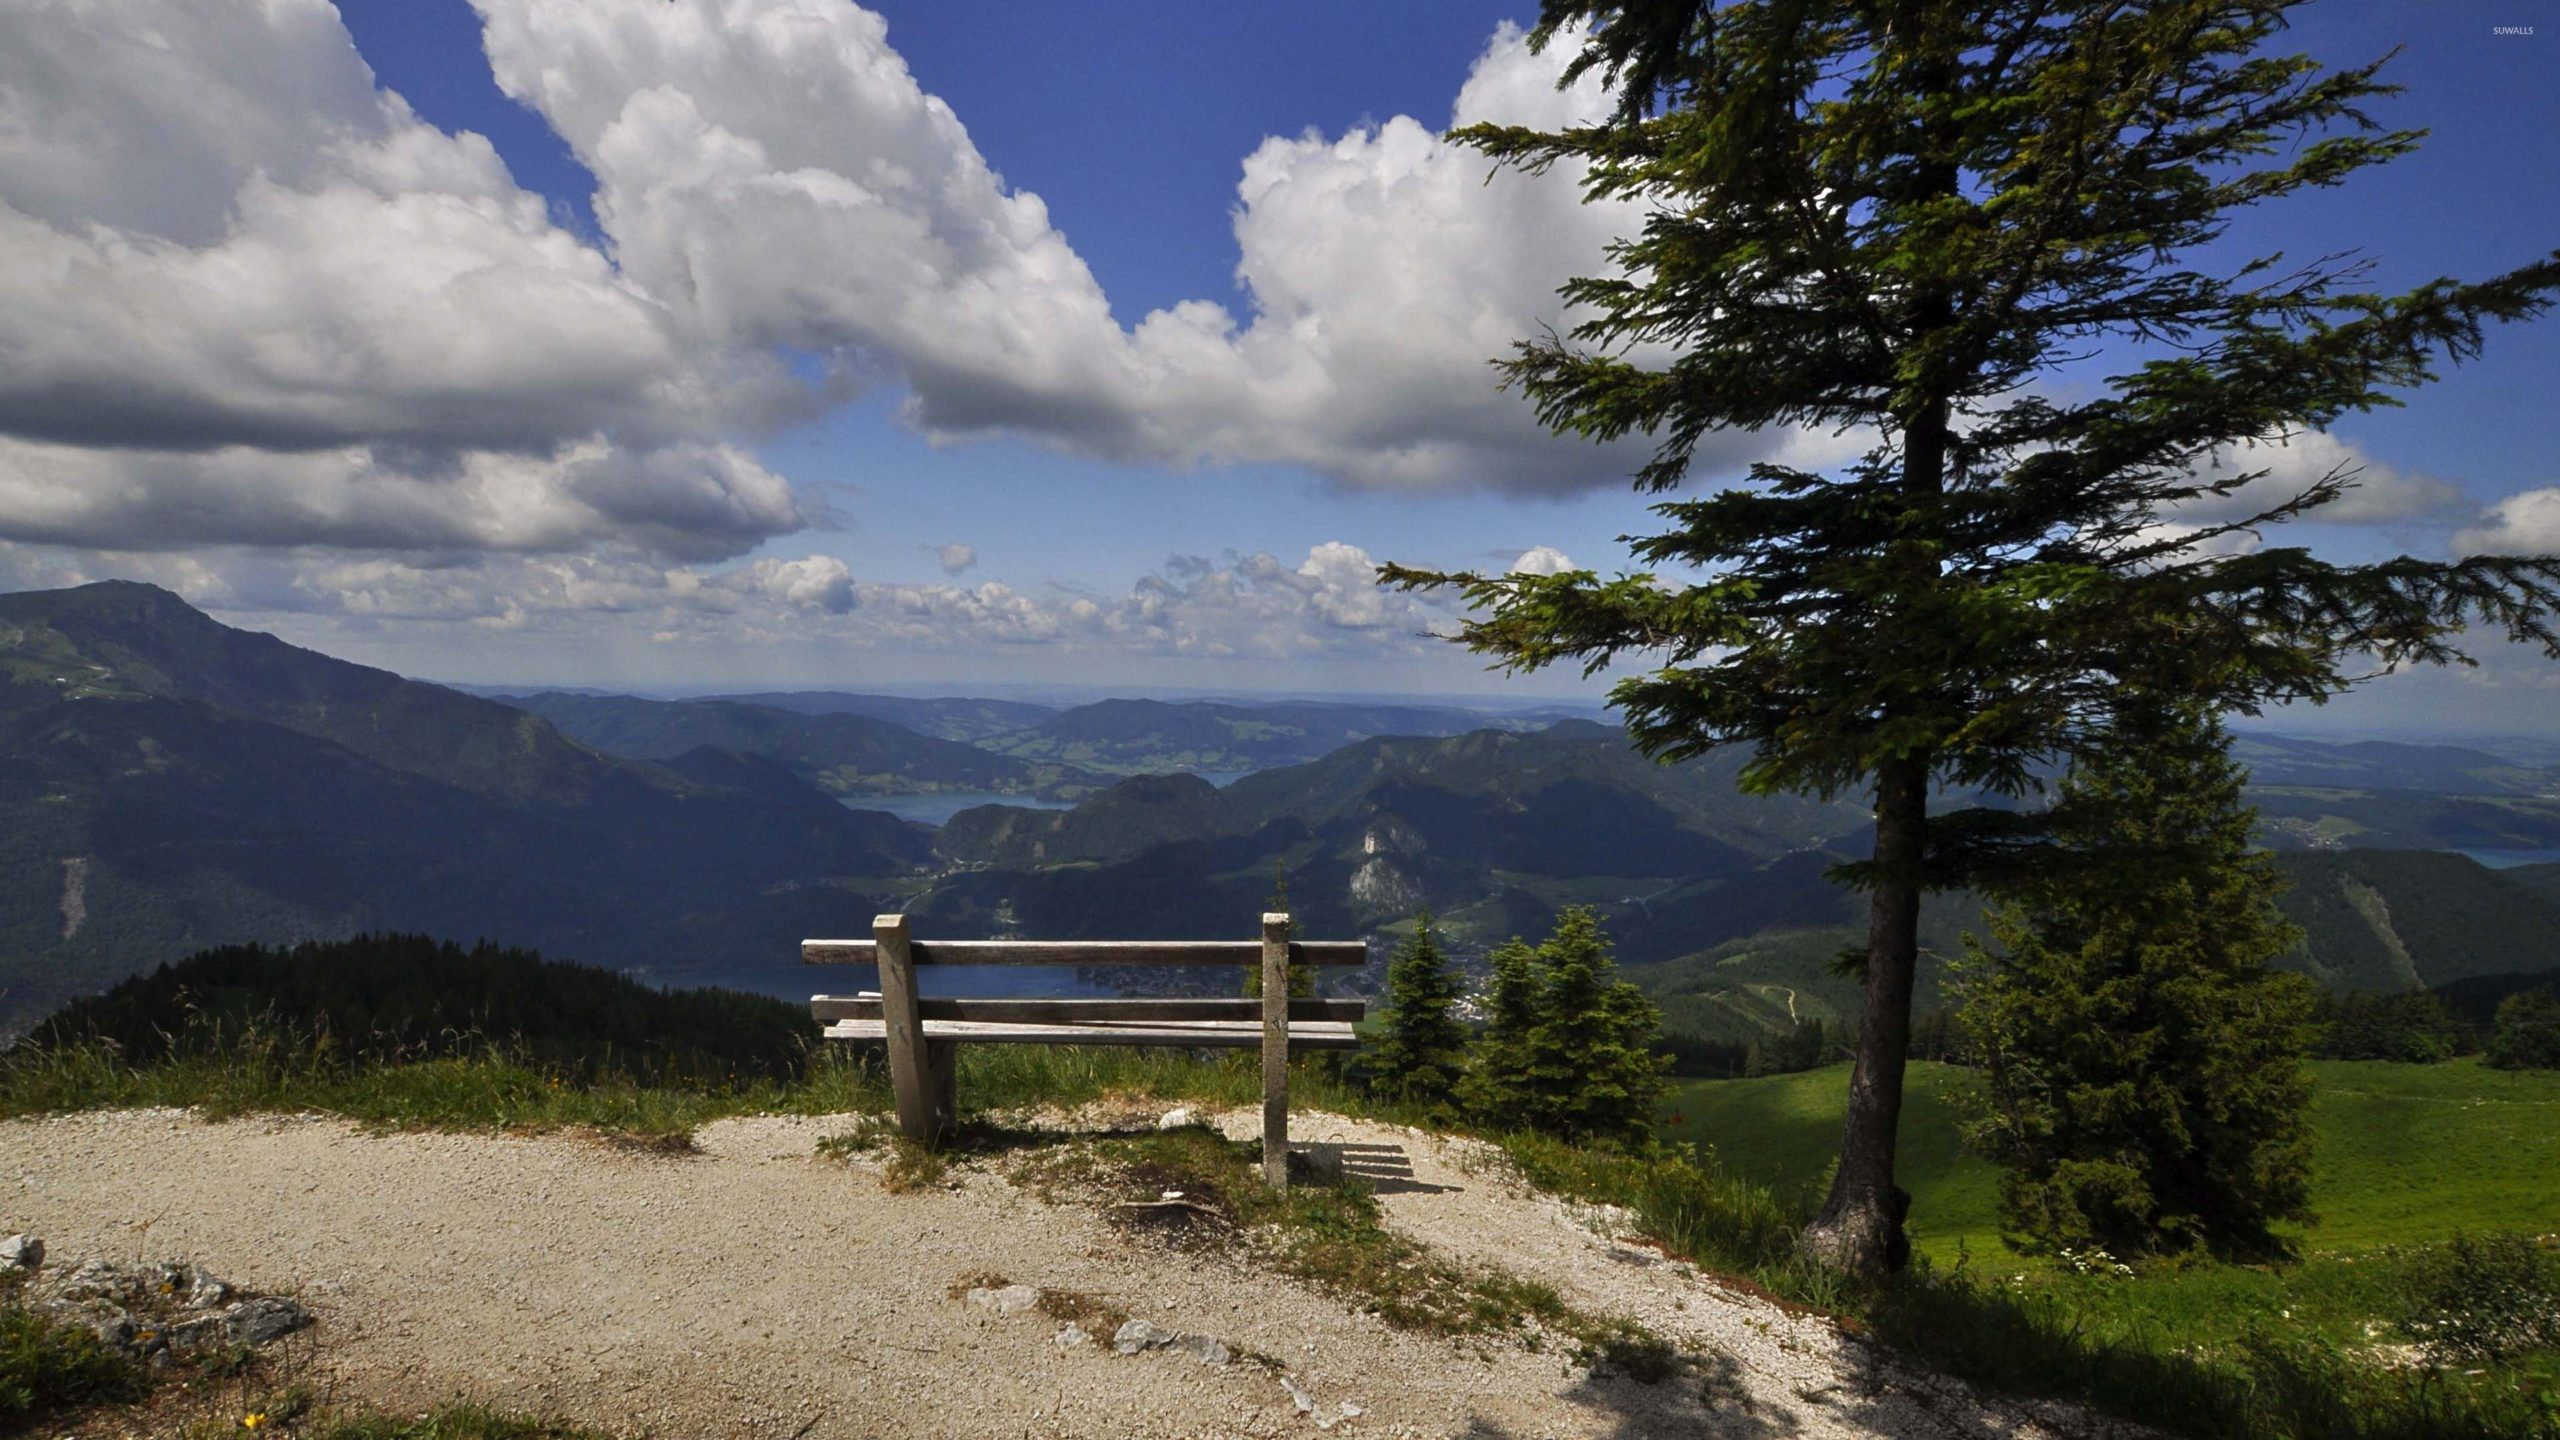 Bench-on-the-edge-of-the-mountain-3840×2160